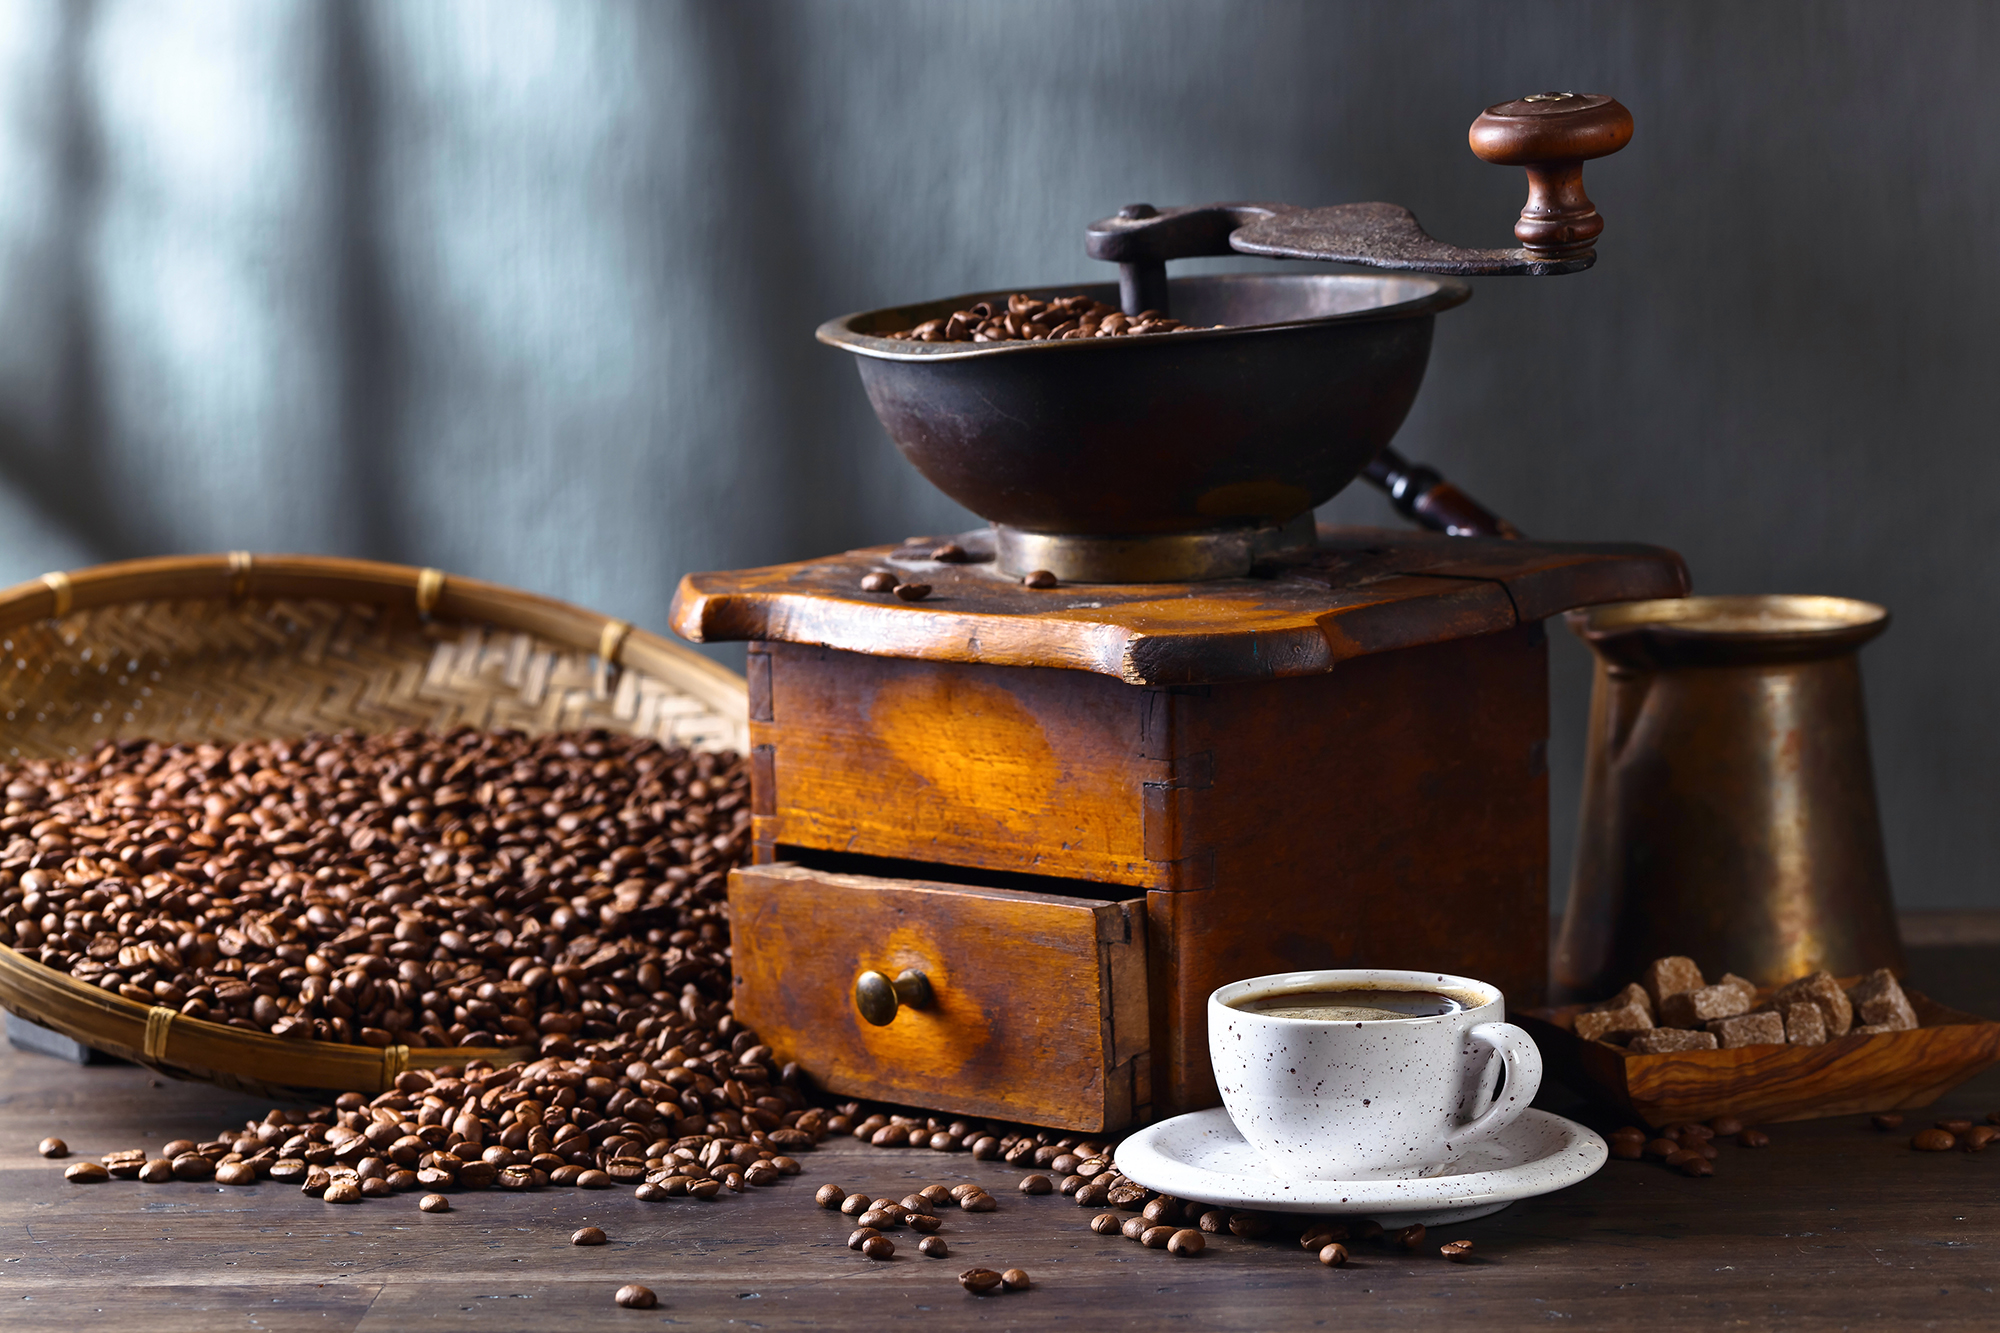 Cup of black coffee , coffee grinder and roasted beans on wooden table